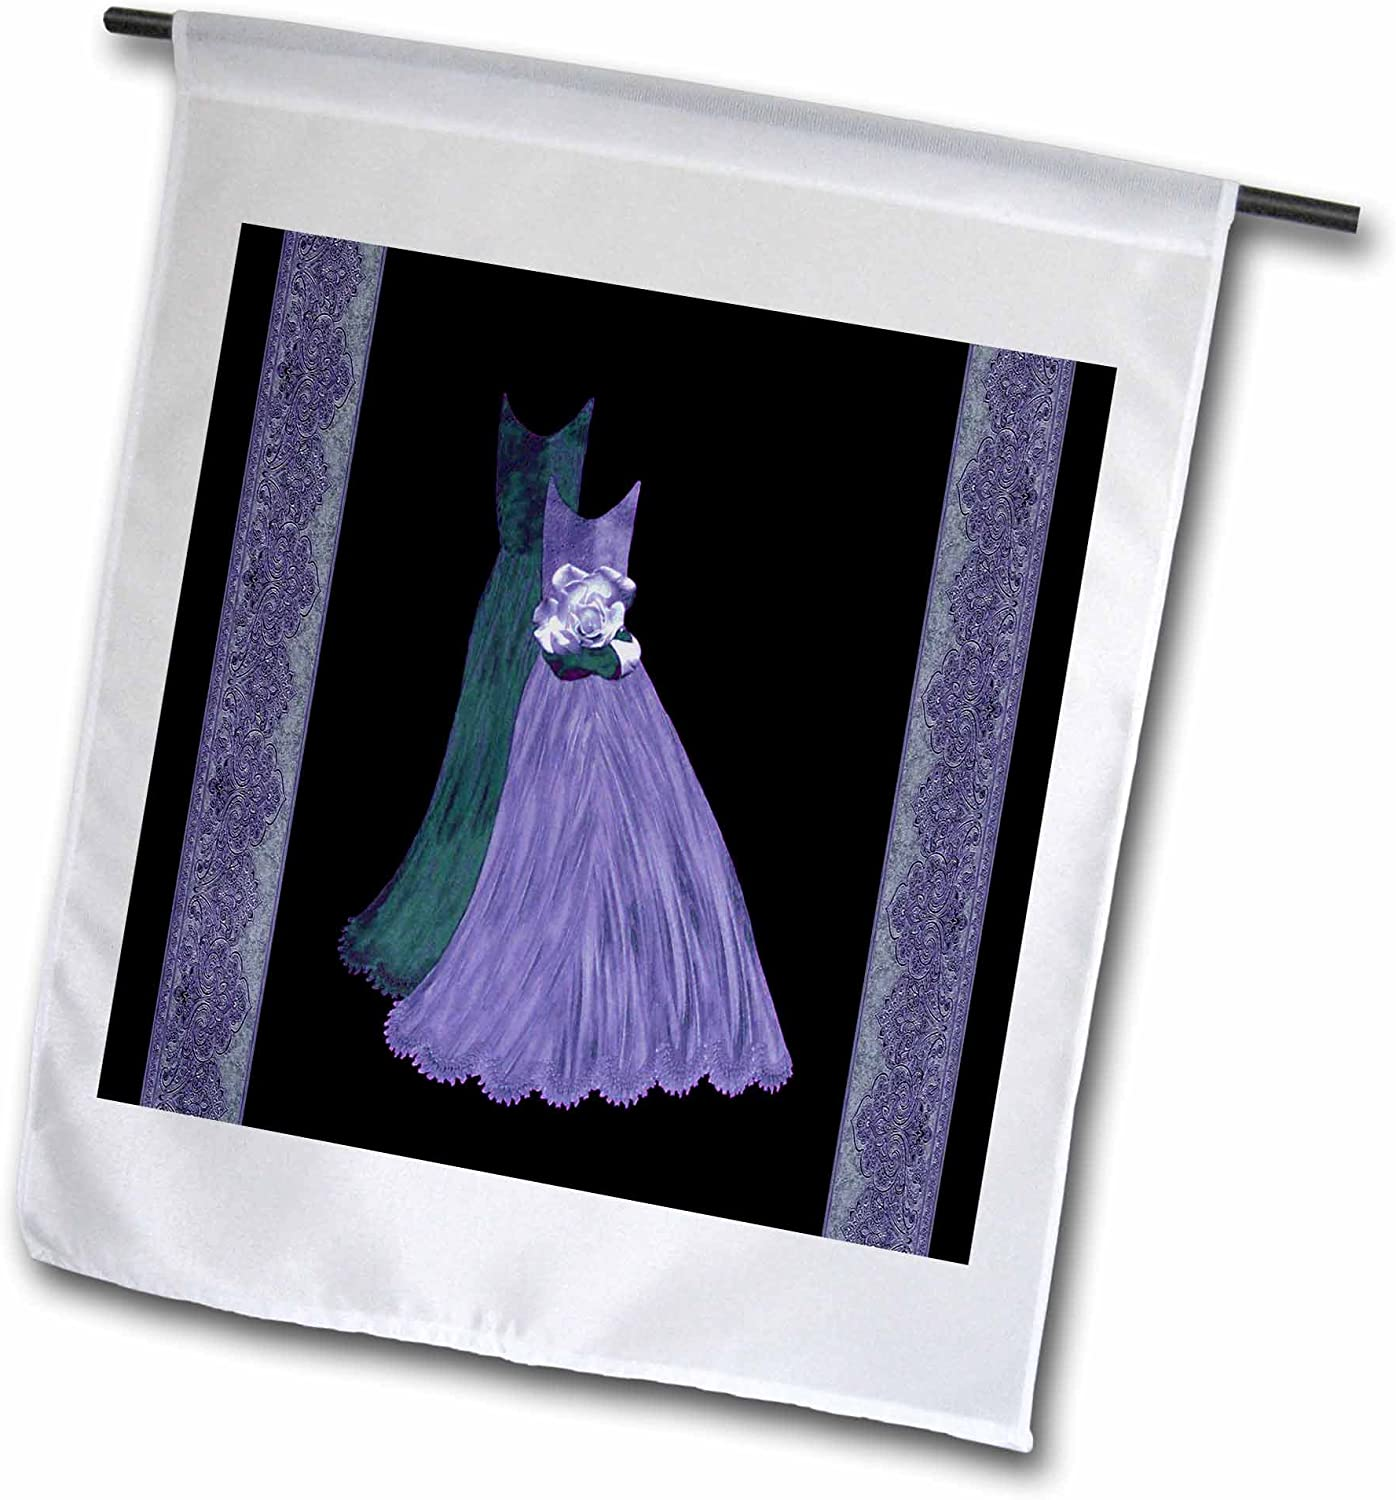 3dRose Blue & Deep Teal Green Gowns with Coordinating Damask Ribbons - Garden Flag, 12 by 18